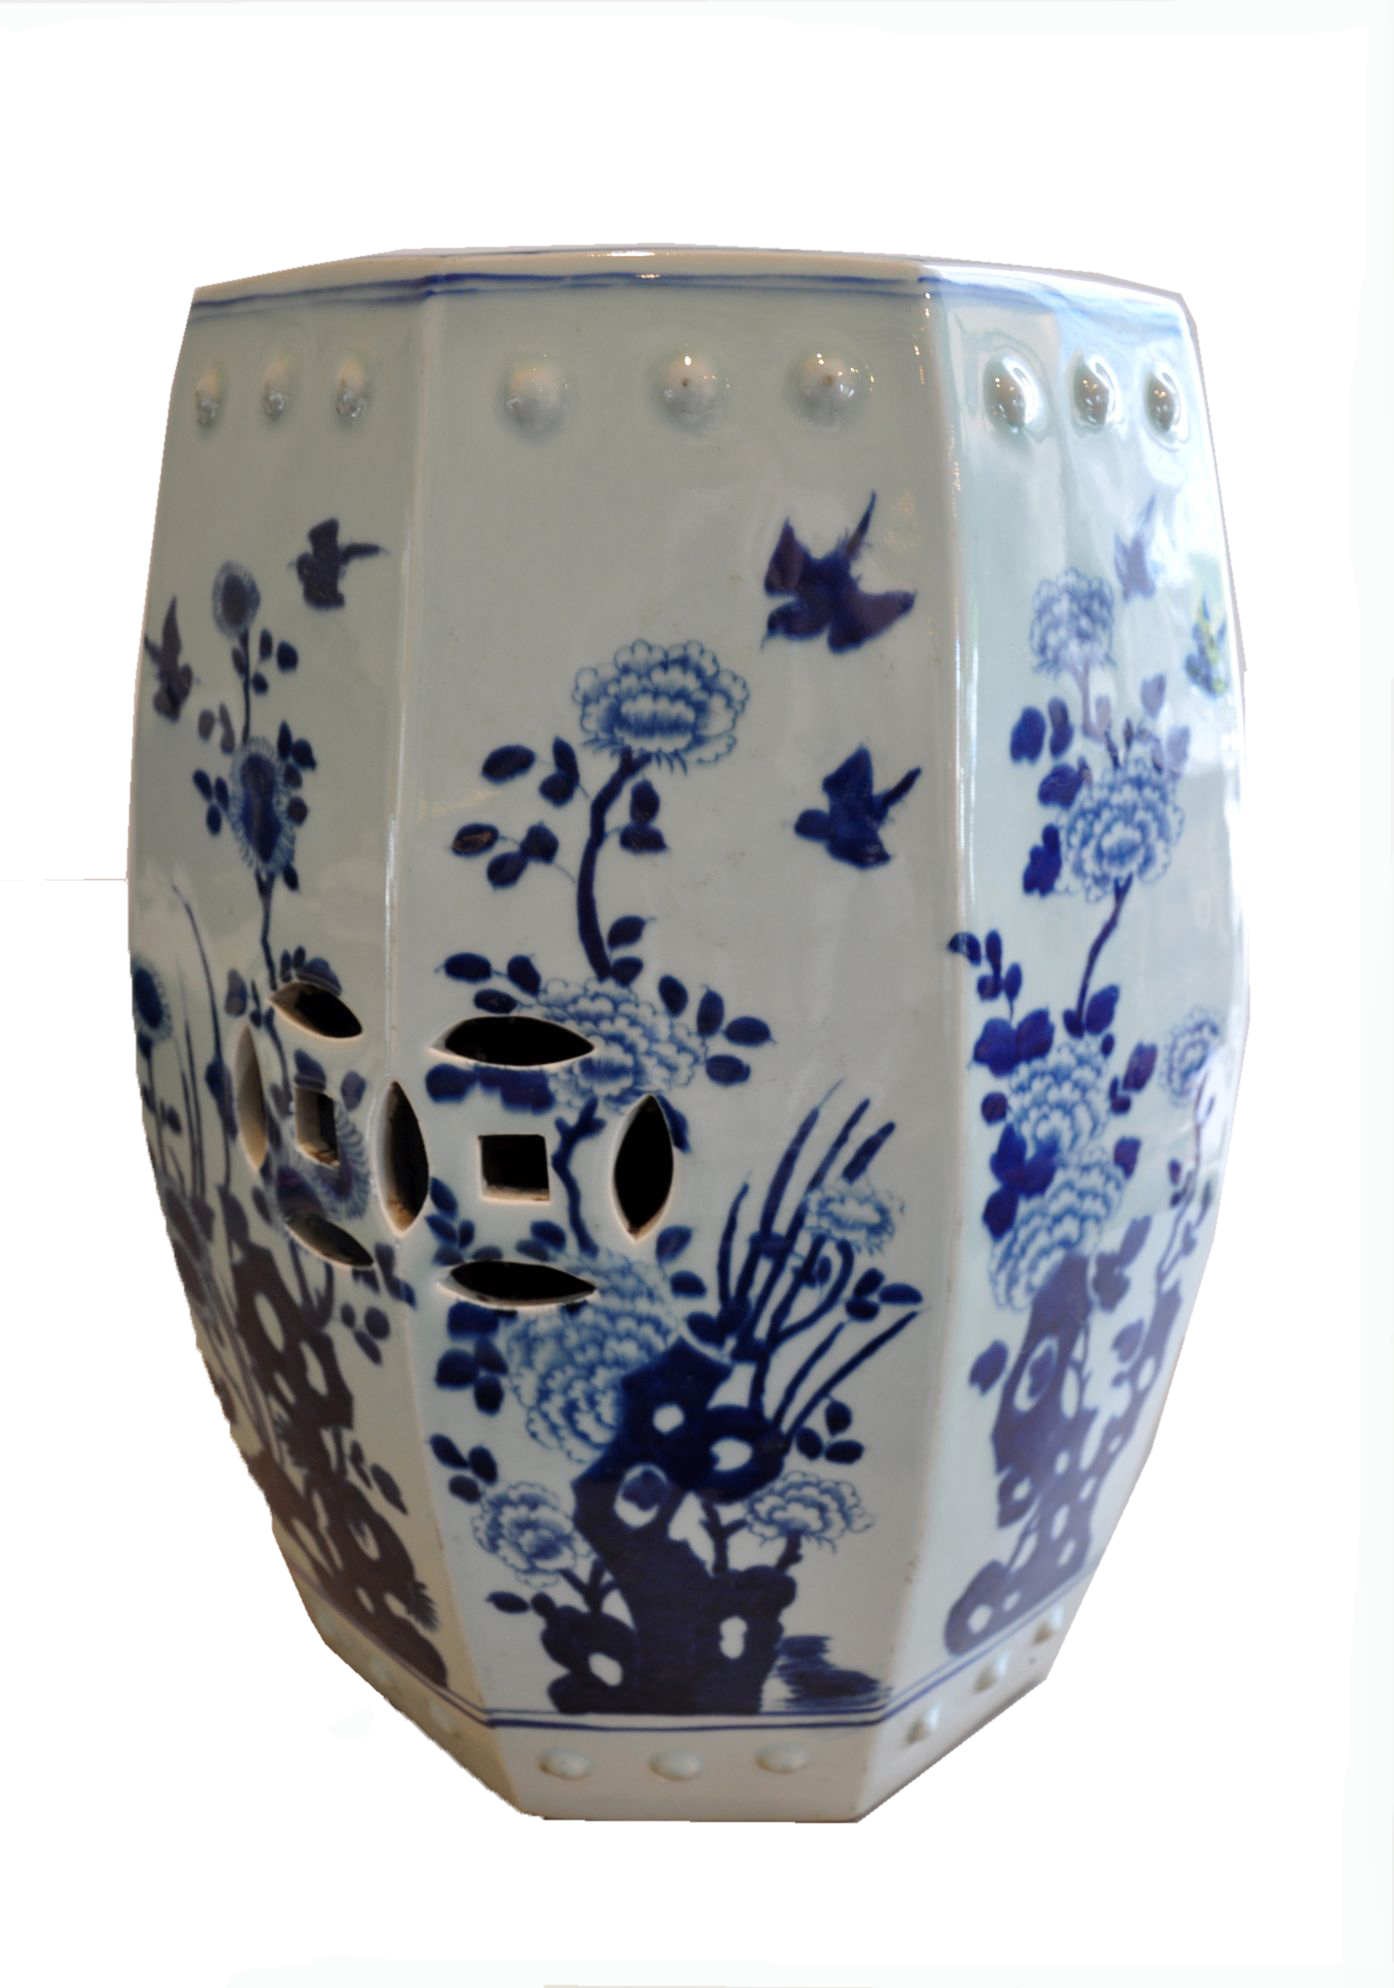 Blue And White Chinese Garden Stool Mecox Gardens